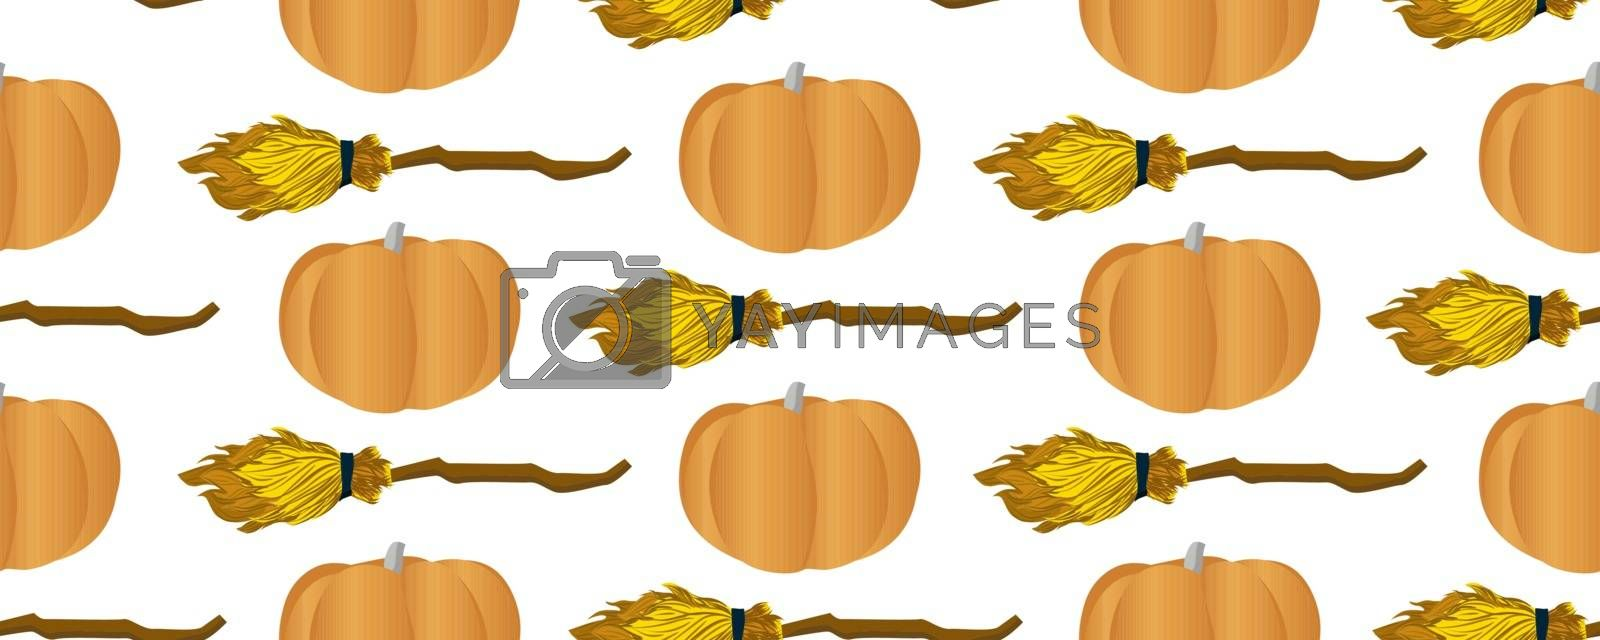 Shameless vector pattern for teenage textiles. Ideal for the design of notebooks, wrapping paper, fabric. Pumpkins and broom for flying.